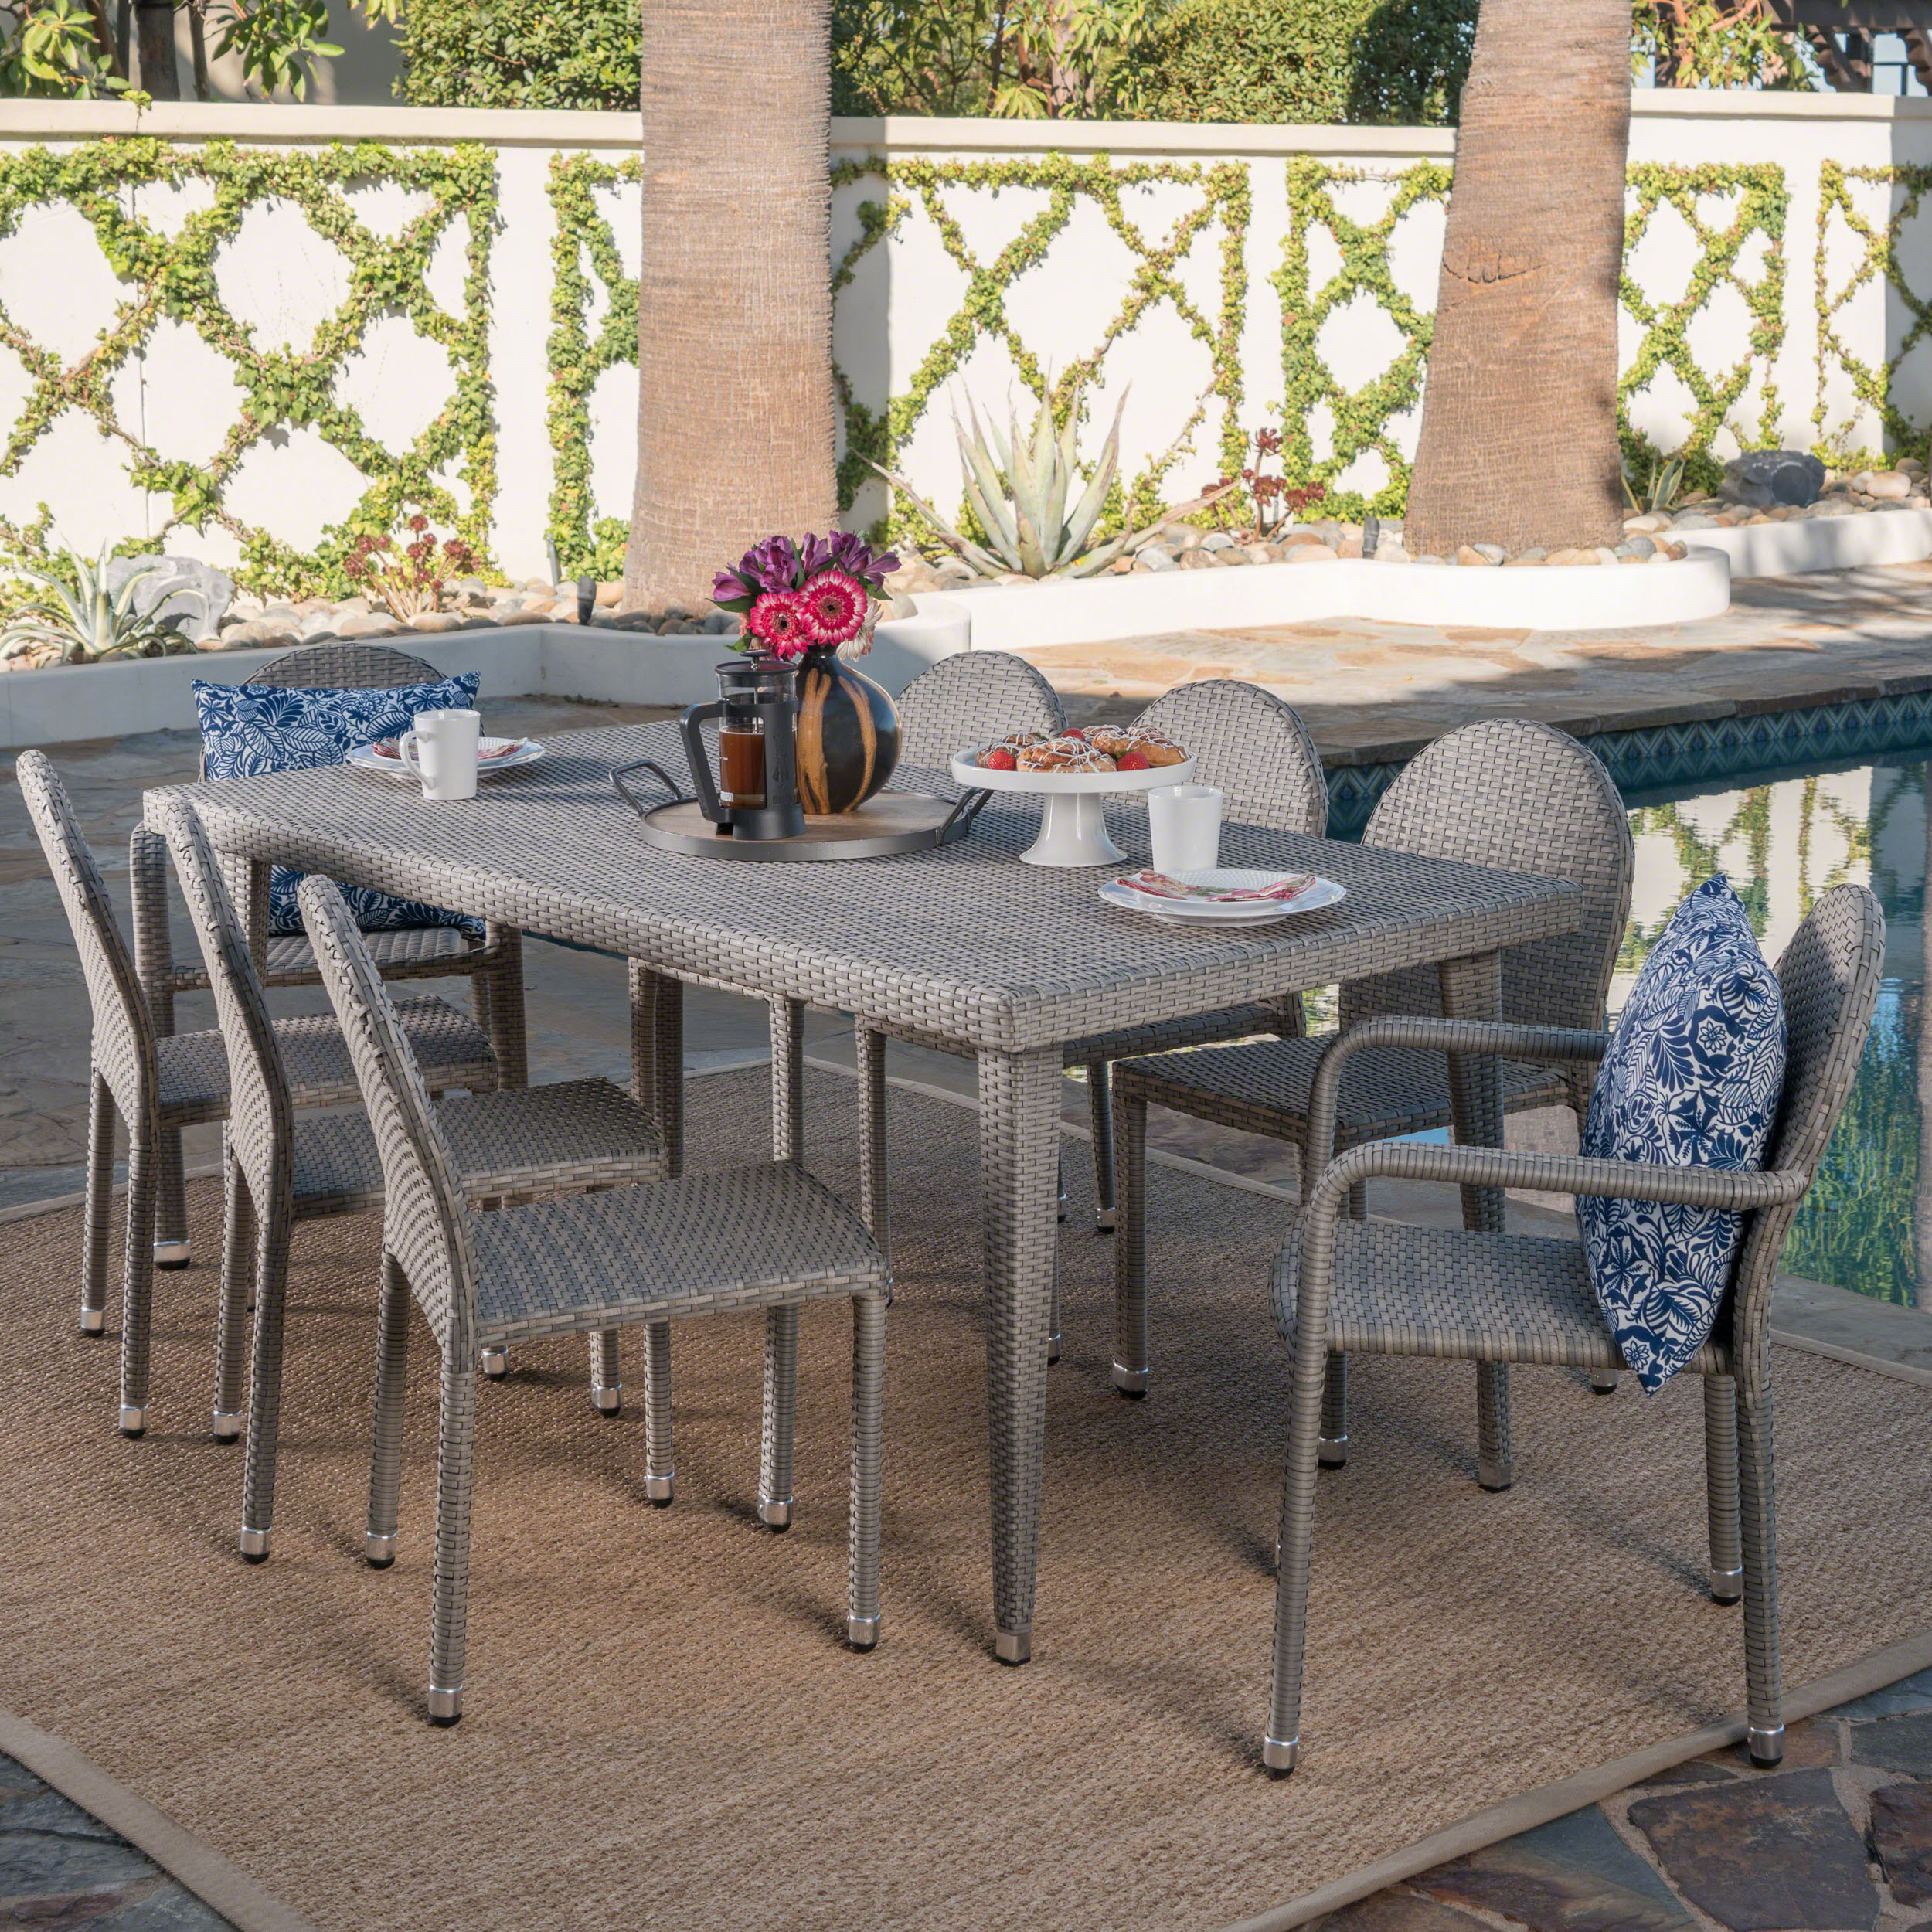 Carter Outdoor 9 Piece Wicker Dining Set with Armed and Armless Aluminum Framed Stacking Chairs, Chateau Grey